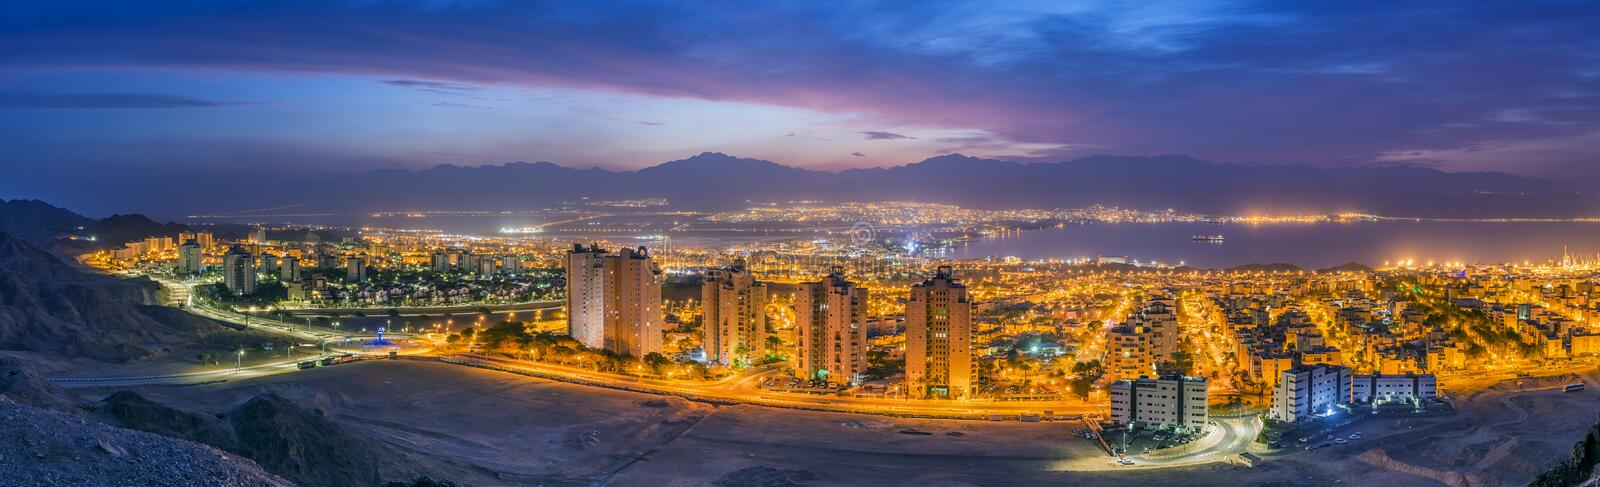 Aerial panoramic nocturnal view on Eilat Israel and Aqaba Jordan cities stock images